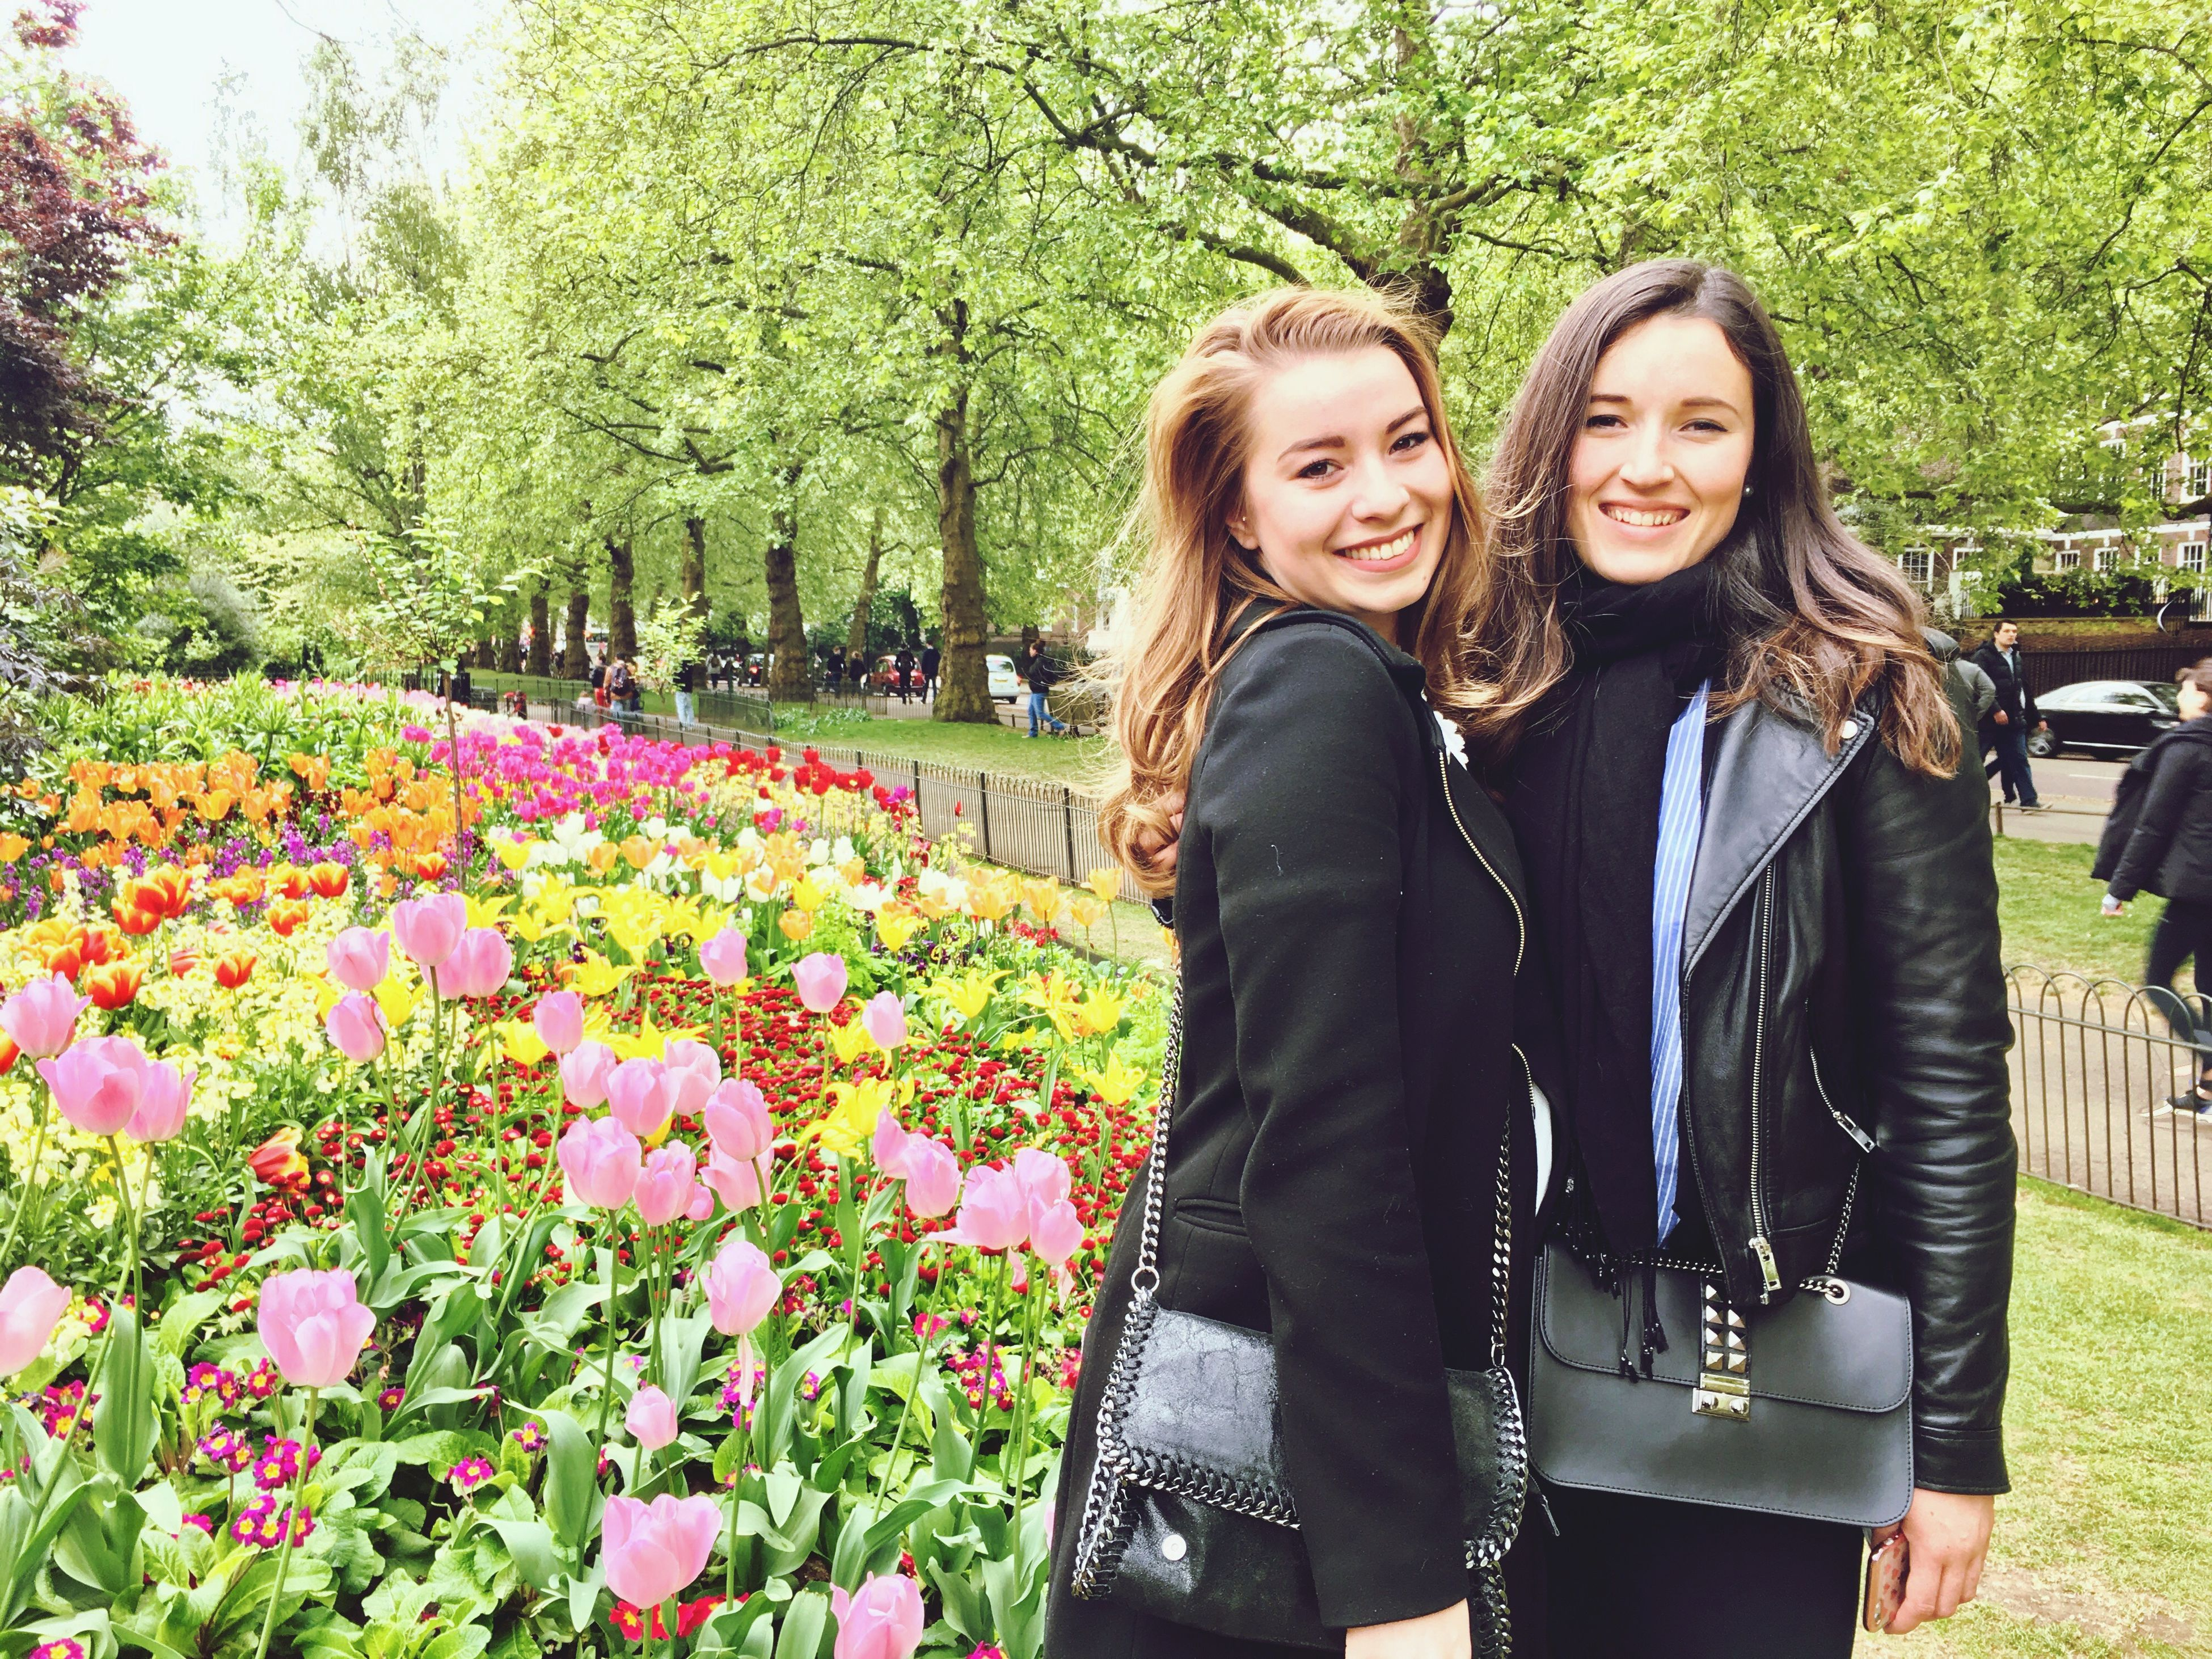 flower, two people, real people, smiling, young women, young adult, day, happiness, togetherness, outdoors, leisure activity, nature, growth, beautiful woman, lifestyles, beauty in nature, women, tree, friendship, people